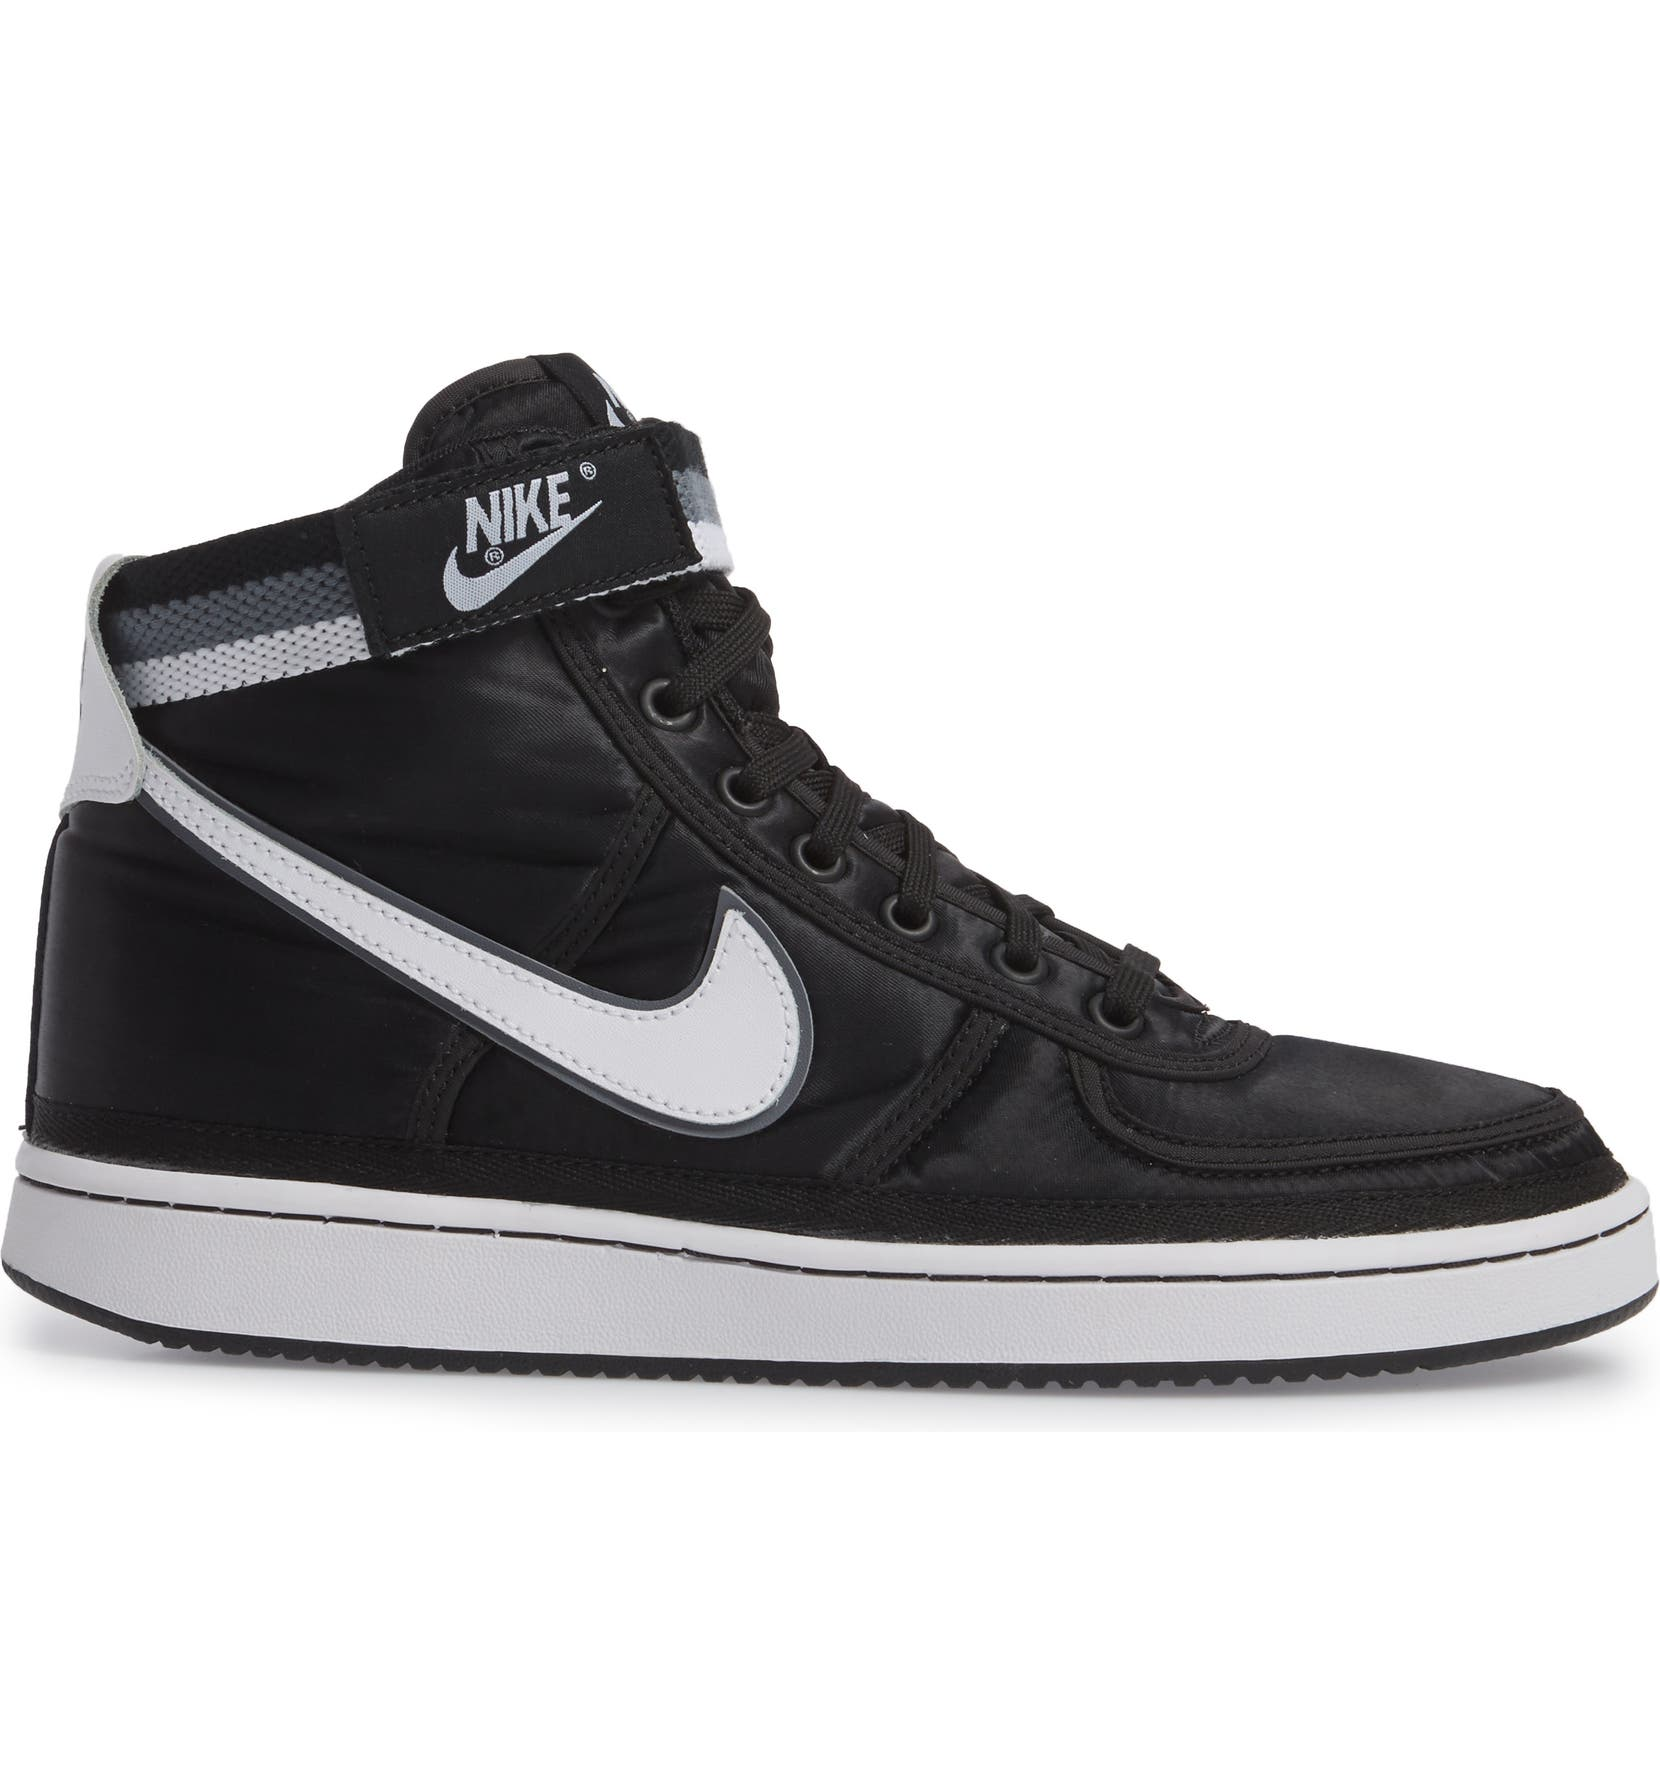 separation shoes 1efc3 83cb9 Nike Vandal High Supreme High Top Sneaker (Men)  Nordstrom